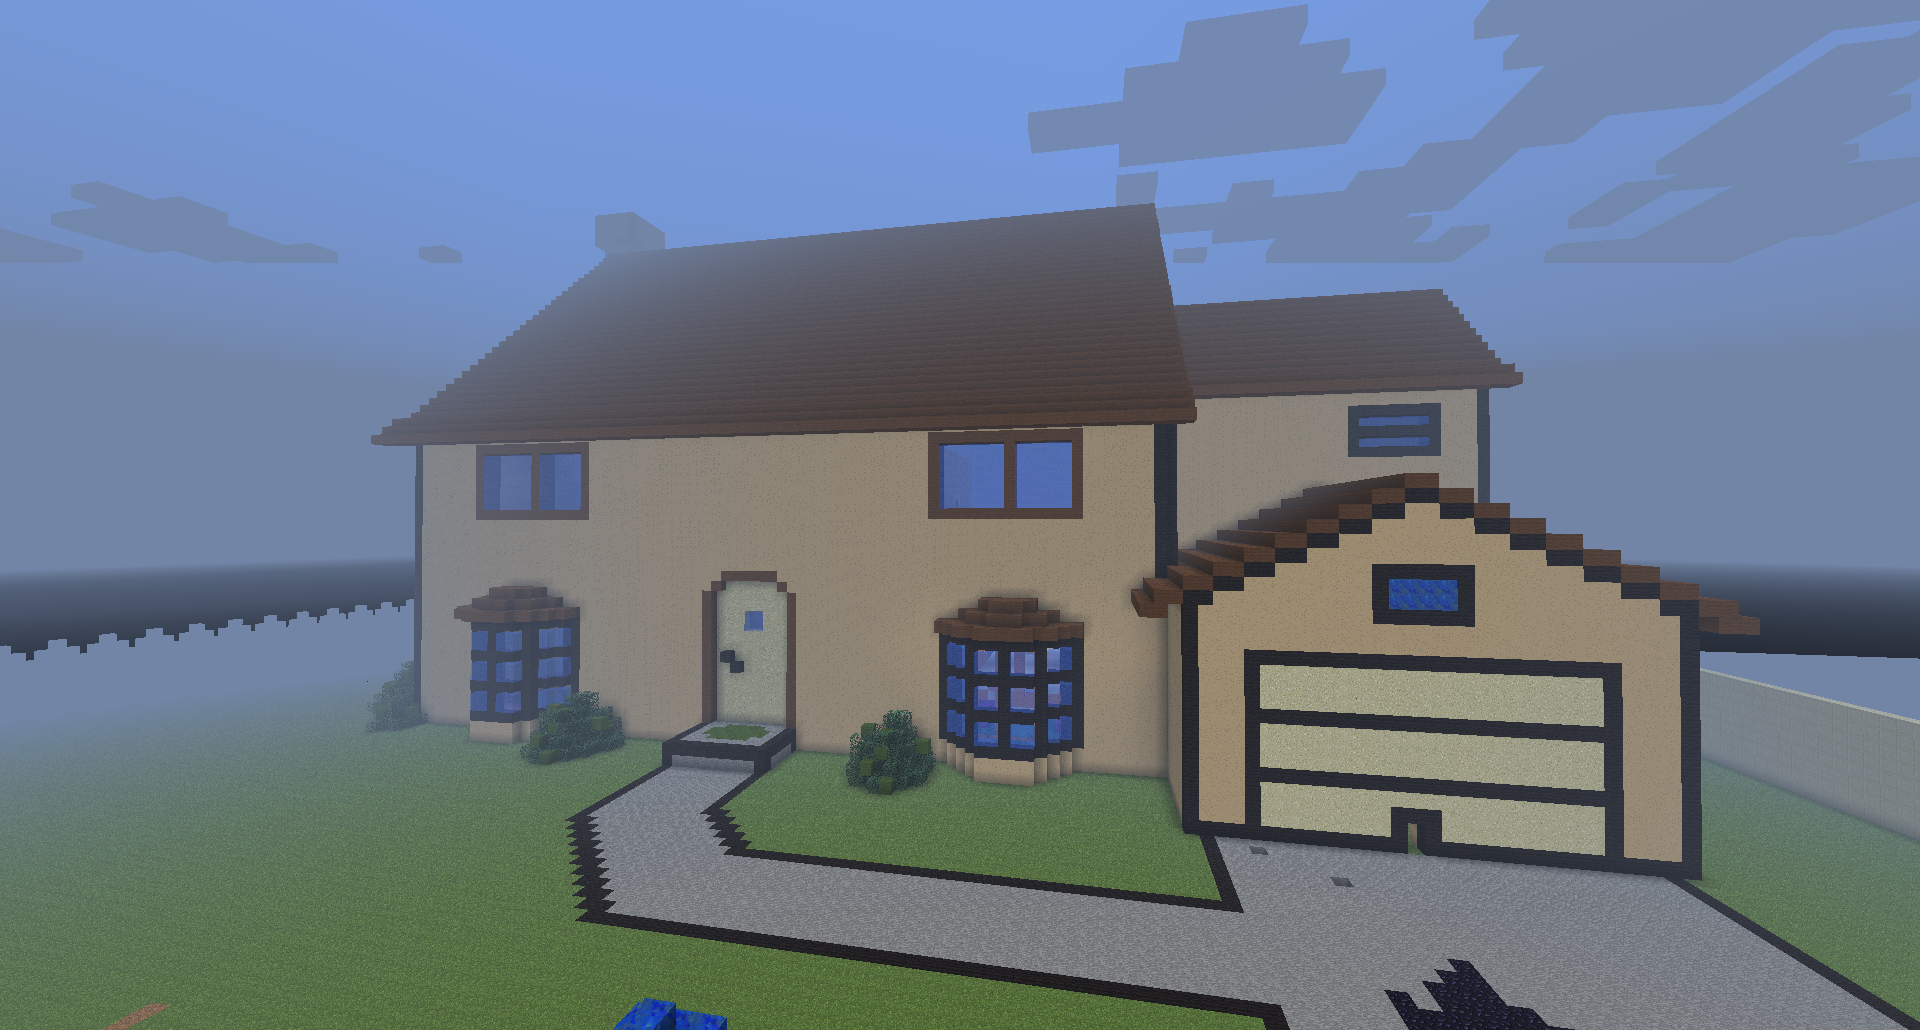 Maison sur minecraft ventana blog for Modele maison minecraft